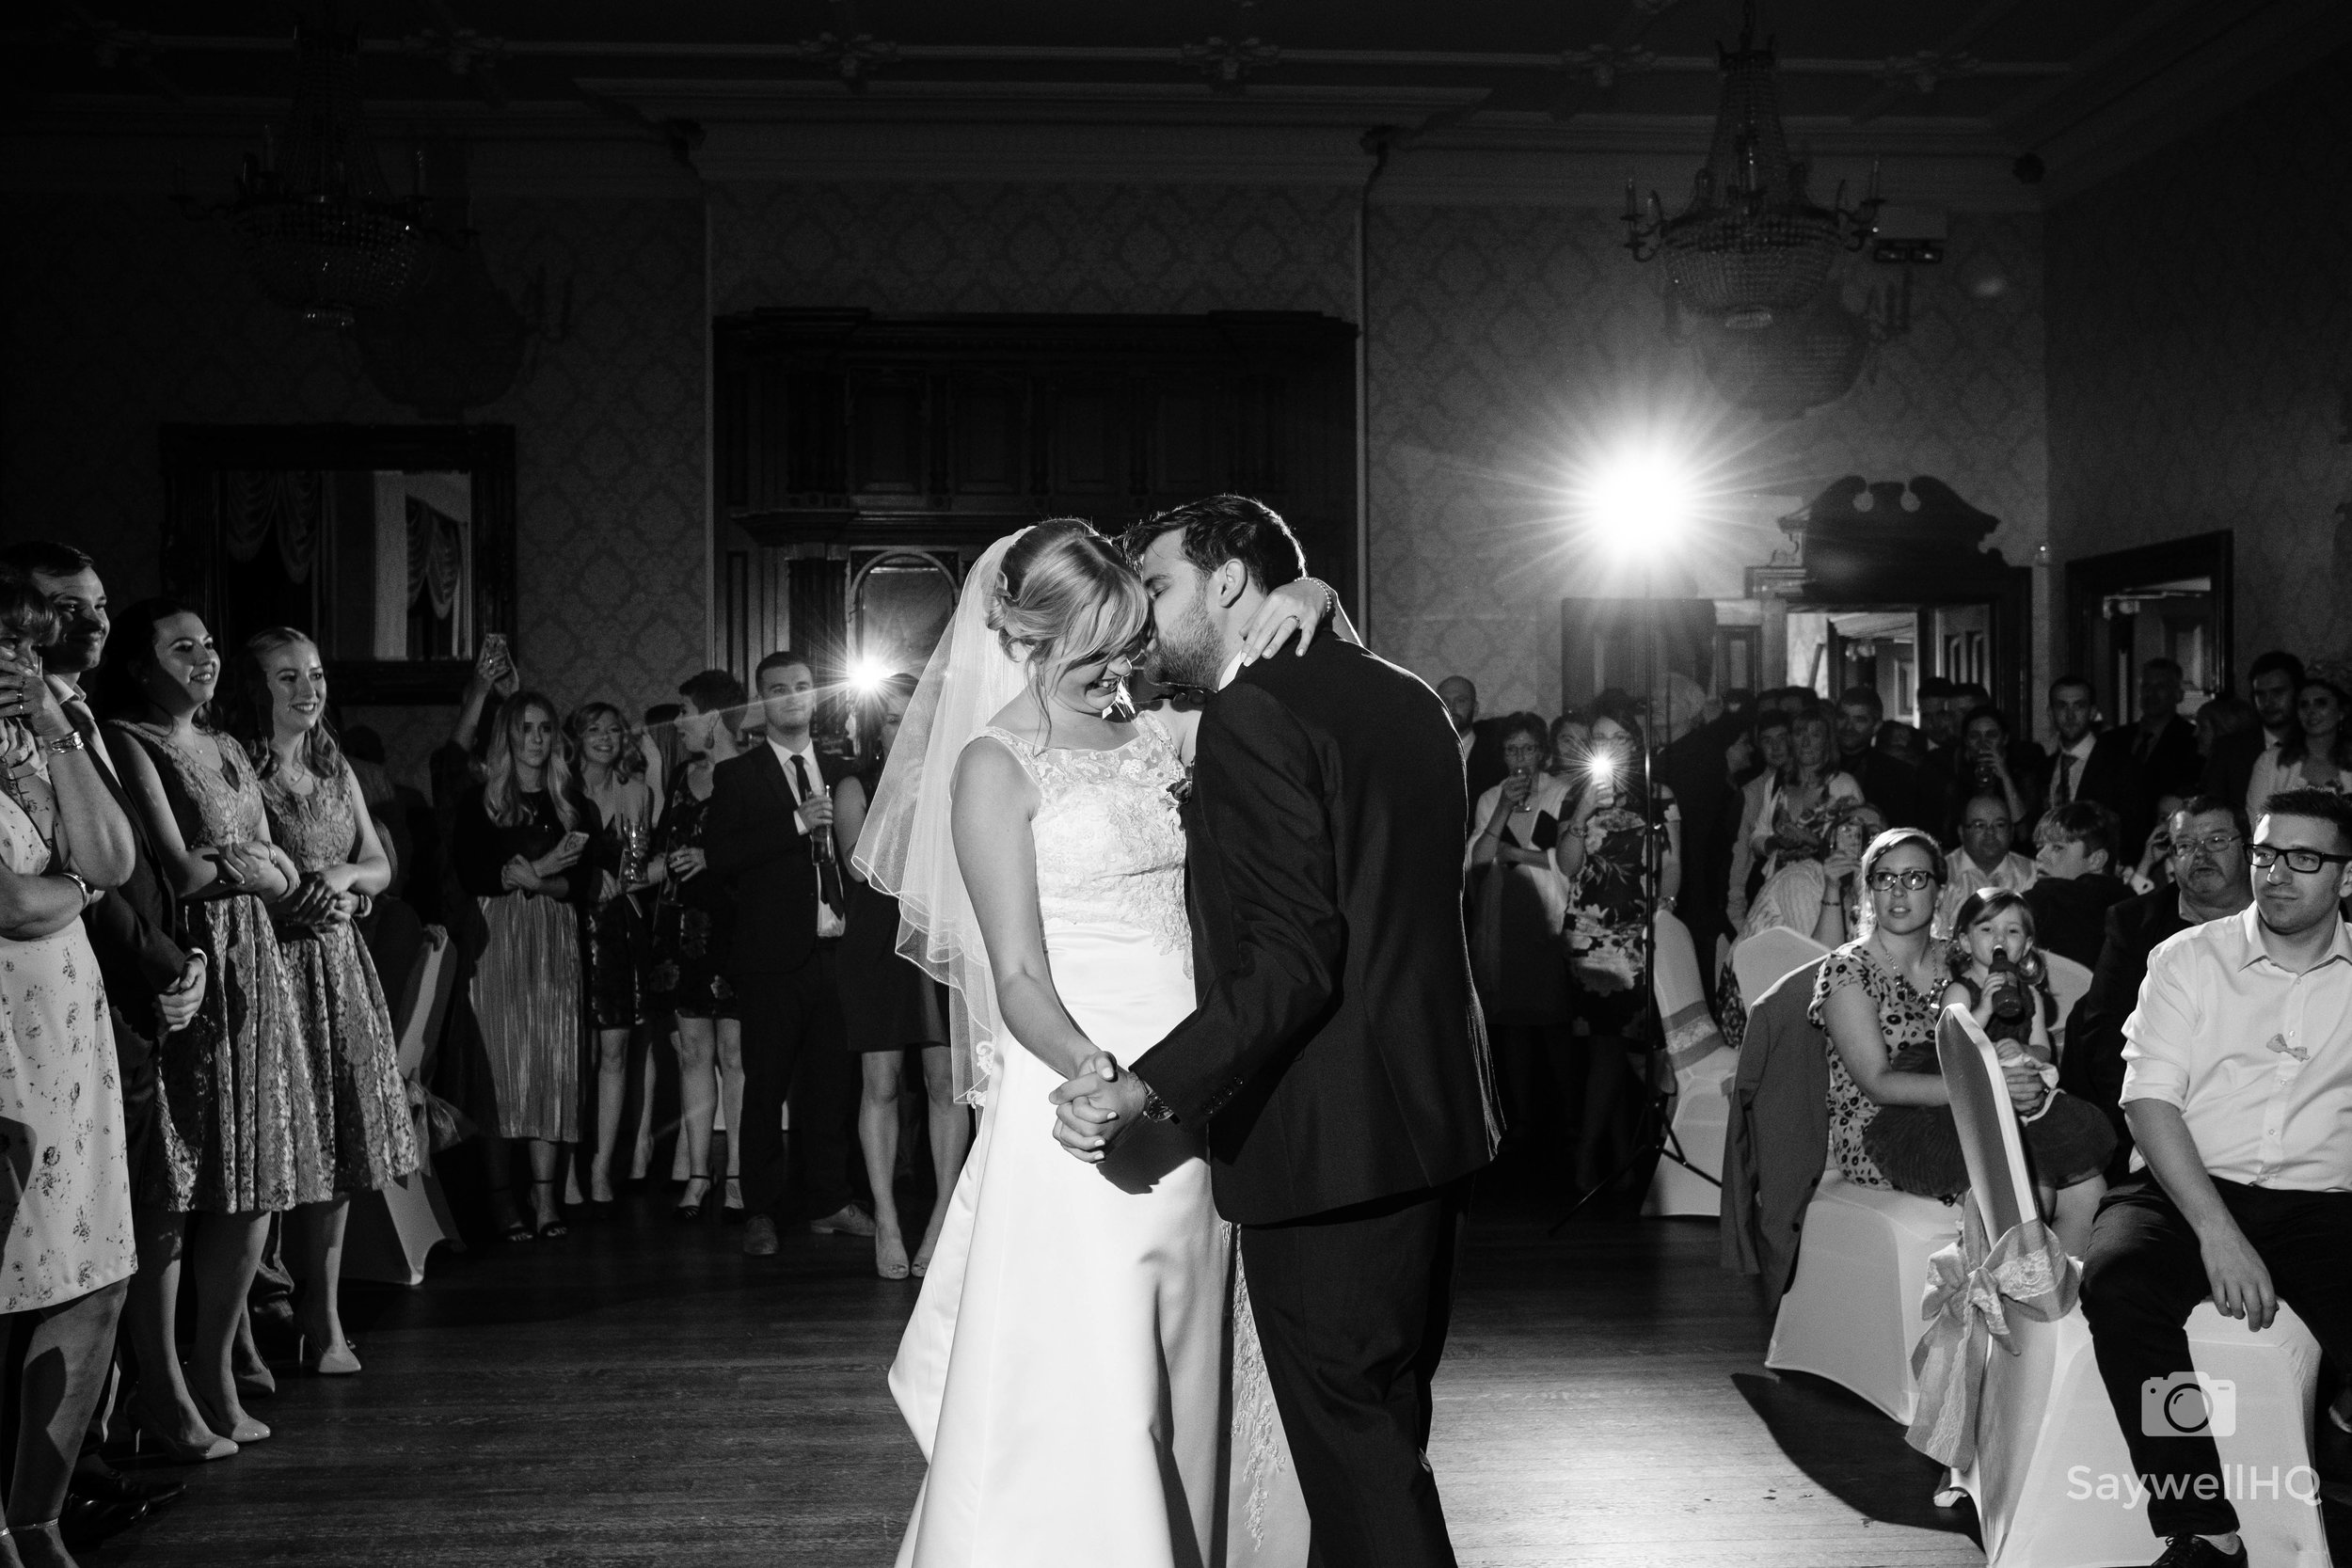 Wedding photography at Alfreton Hall - bride and groom first dance wedding photography at Alfreton Hall